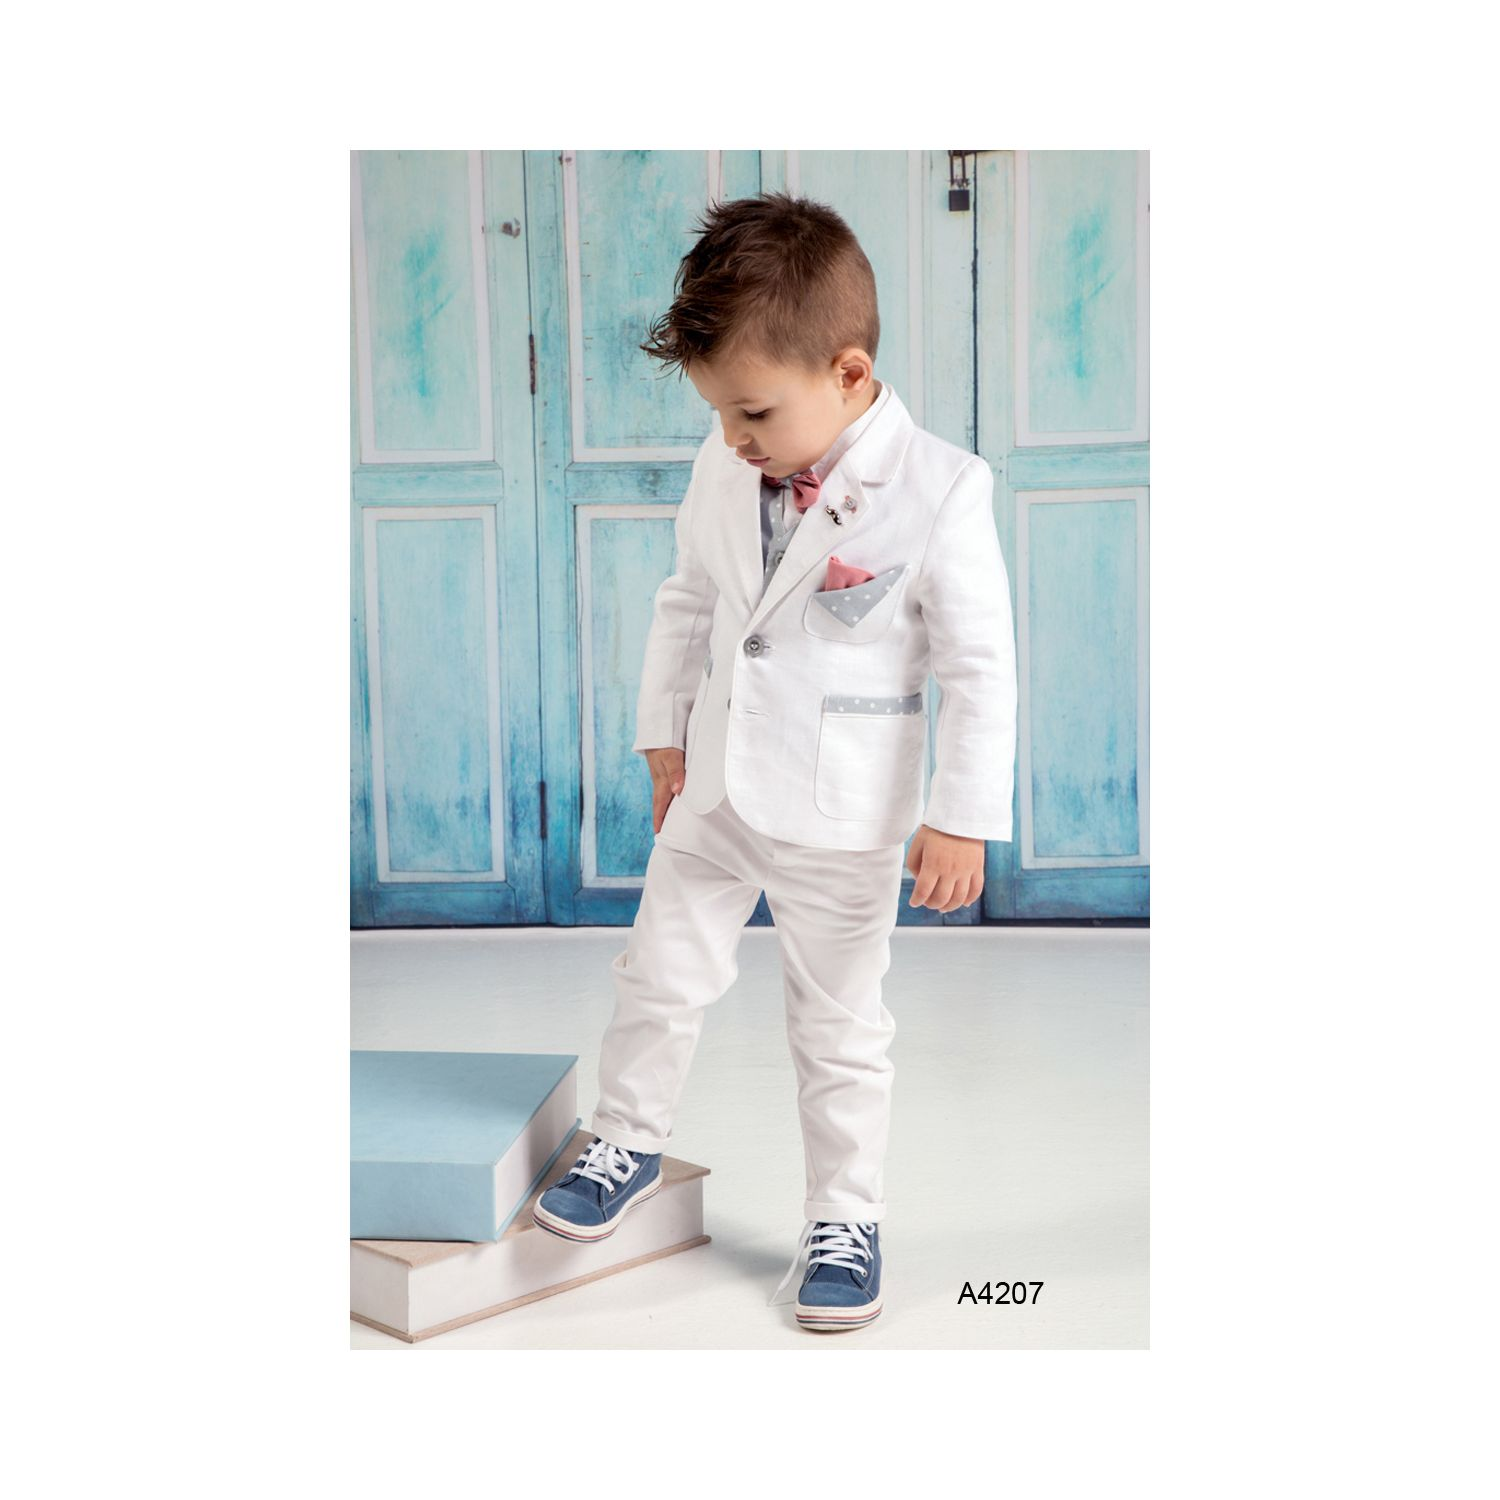 White christening suit for boys A4207